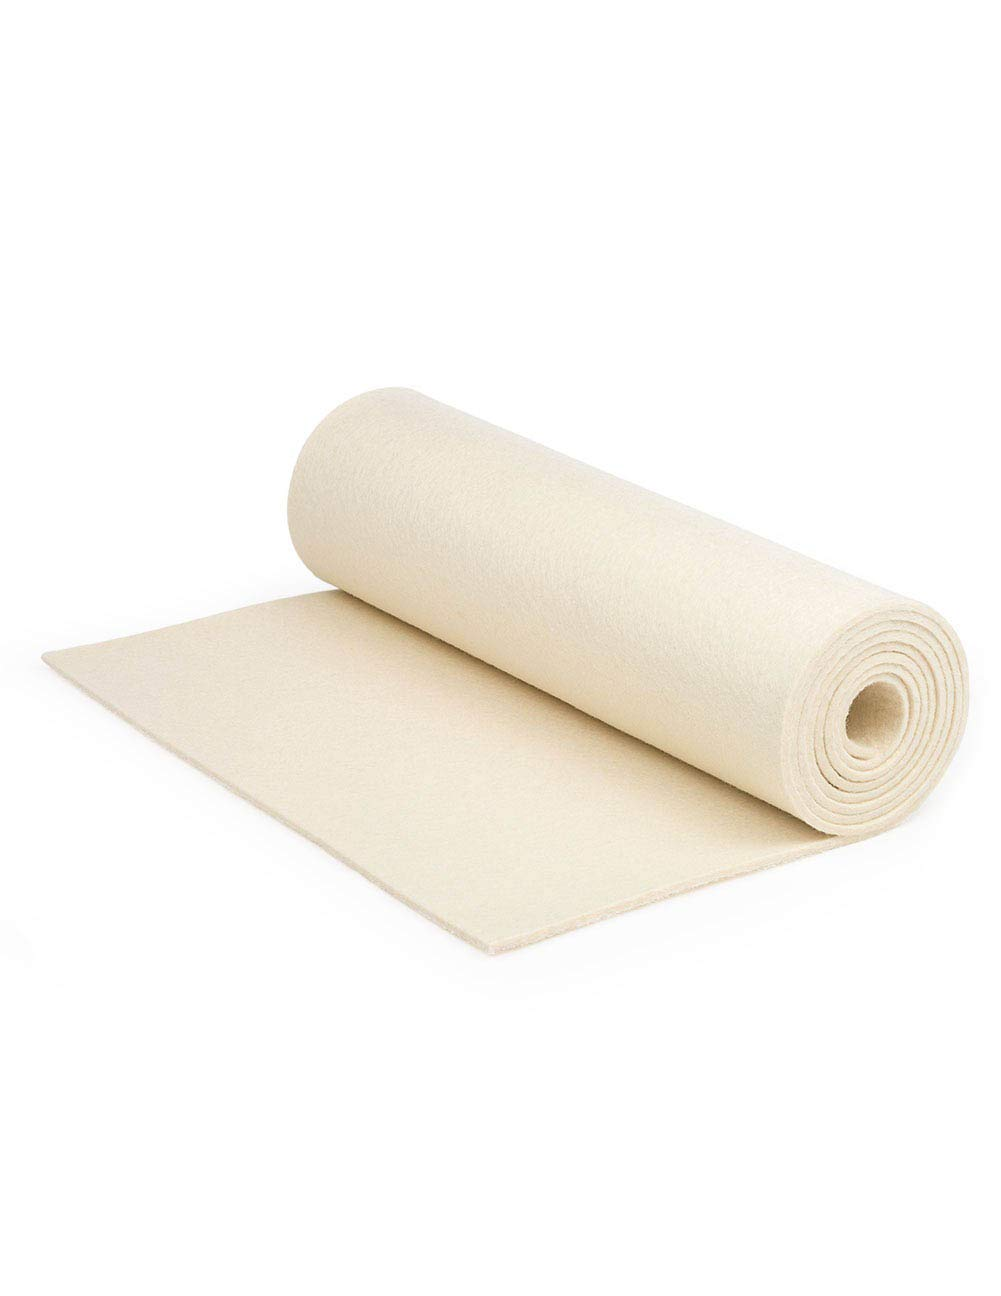 F-10 Industrial Felt by the Foot - 72'' Wide x 1 ft Long x 1/4'' Thick